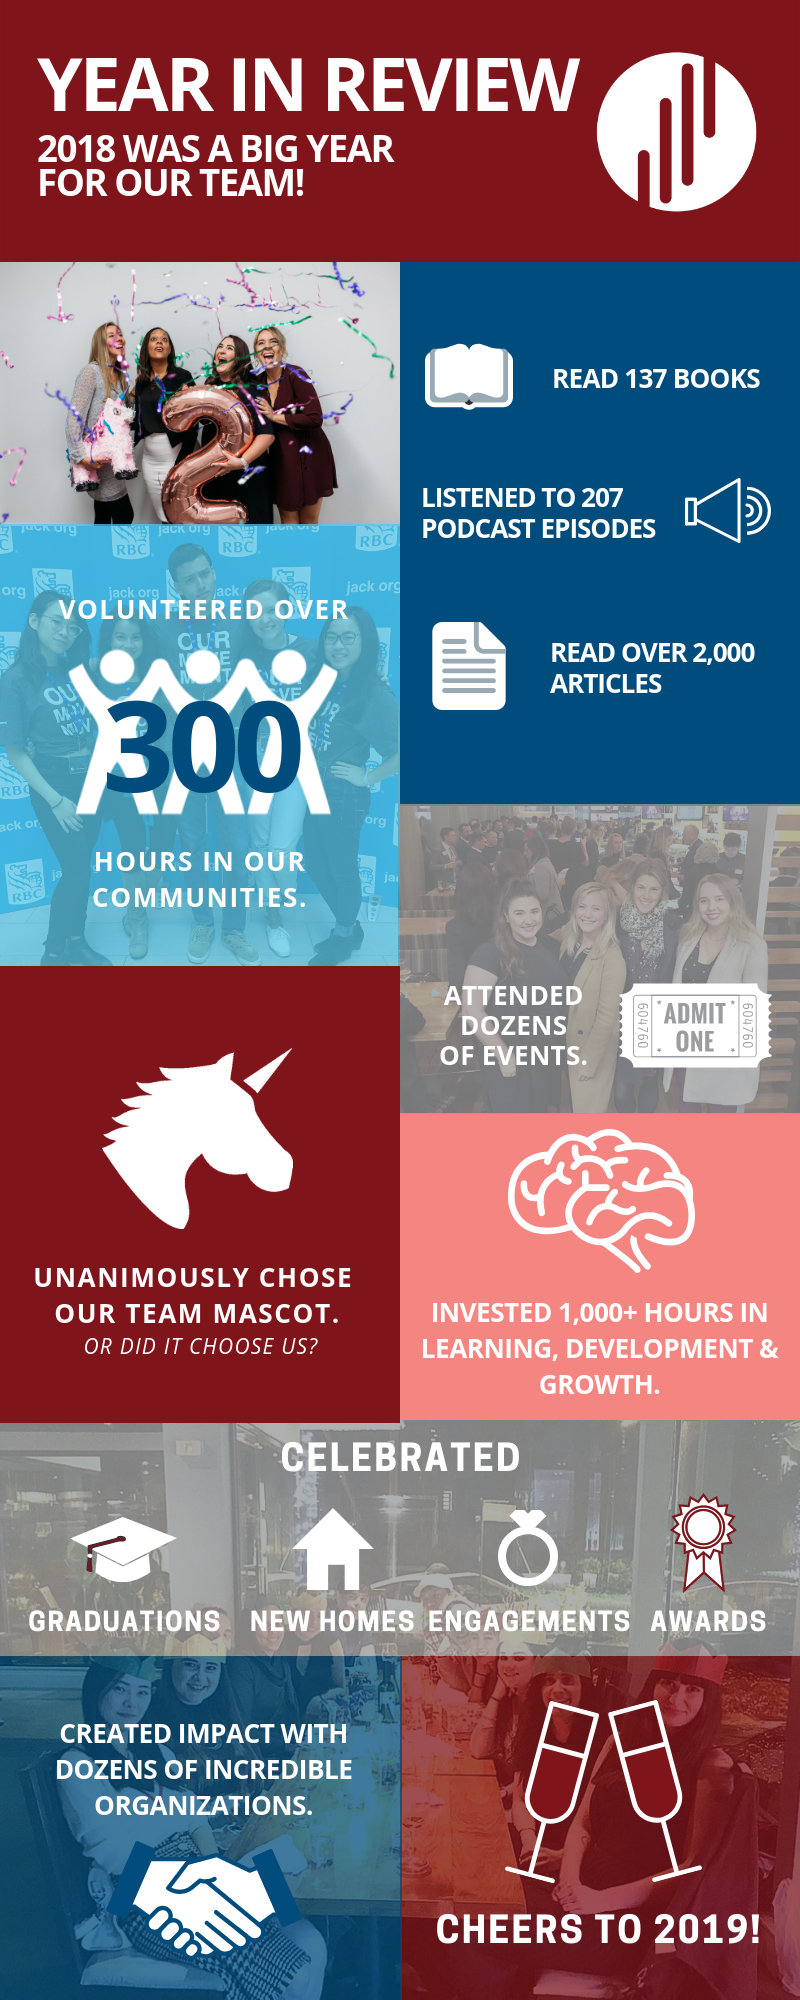 Envol 2018 Year in Review Infographic